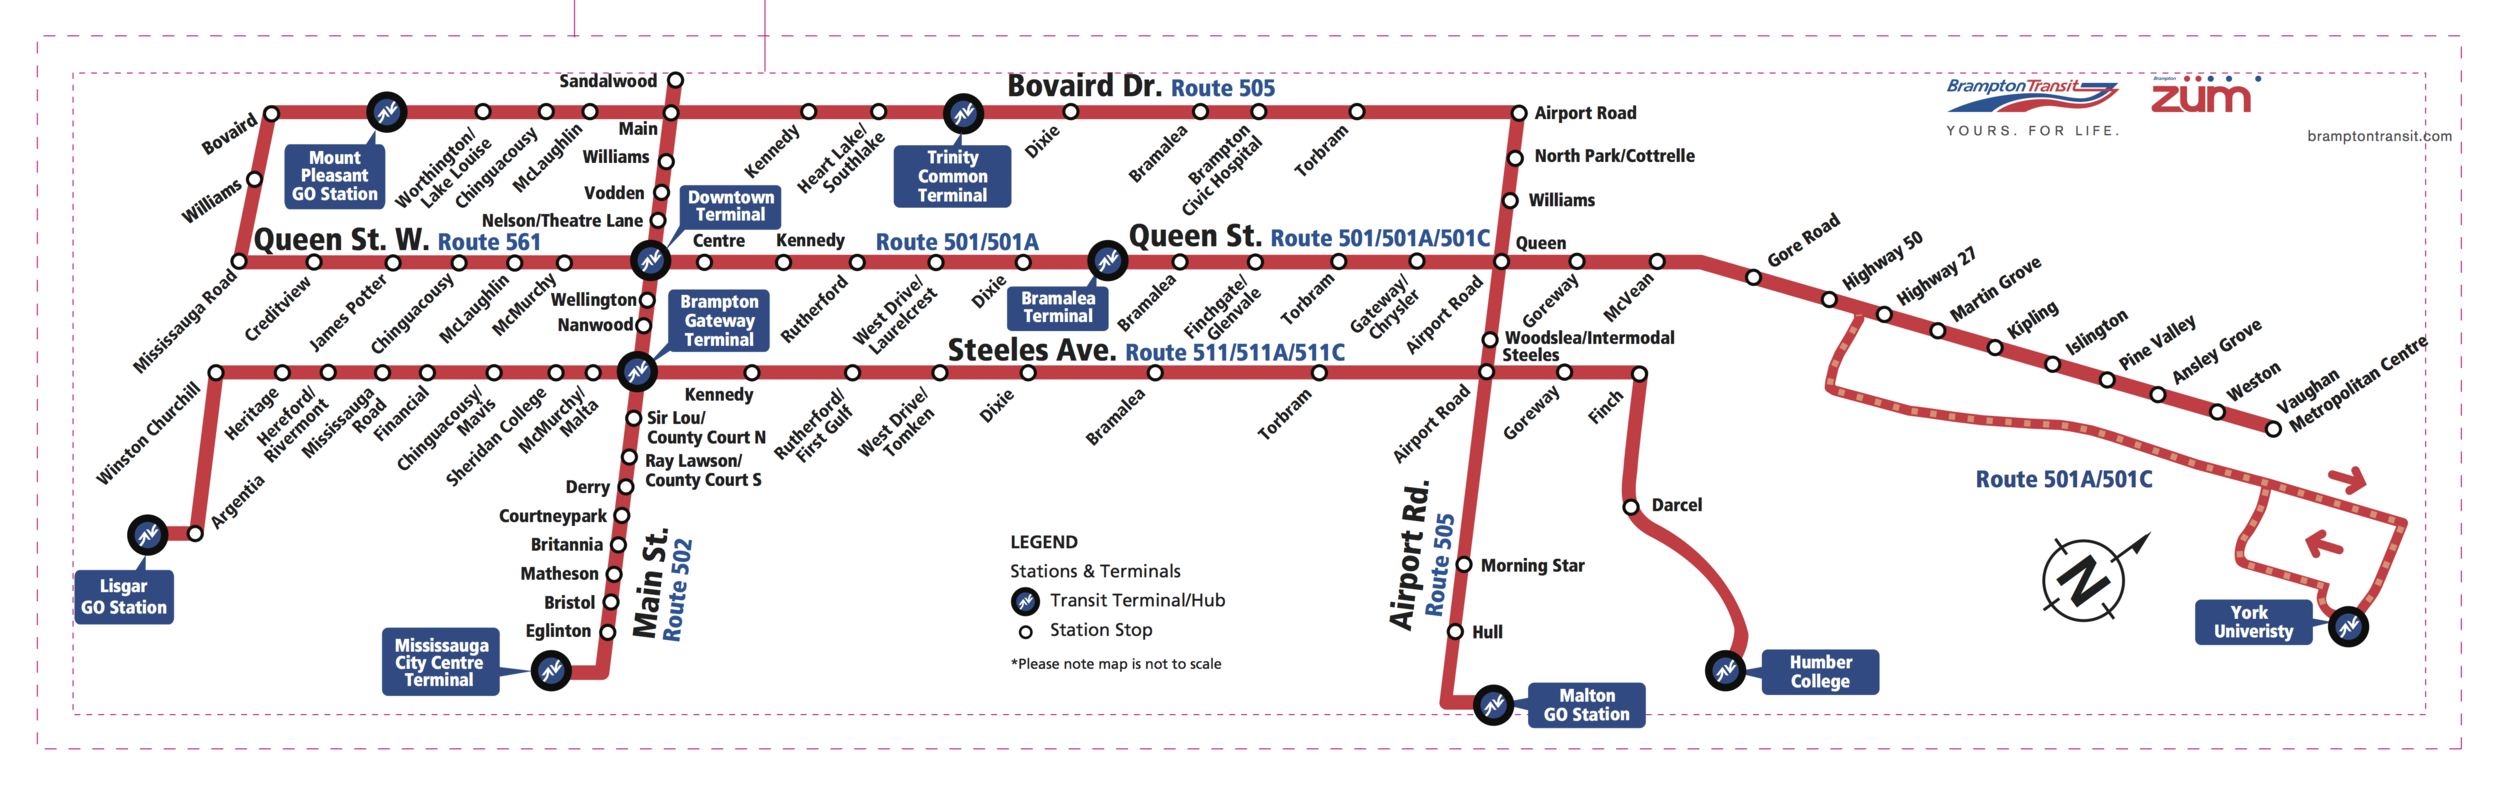 Züm service map (Source: Brampton Transit. Click to view larger.)